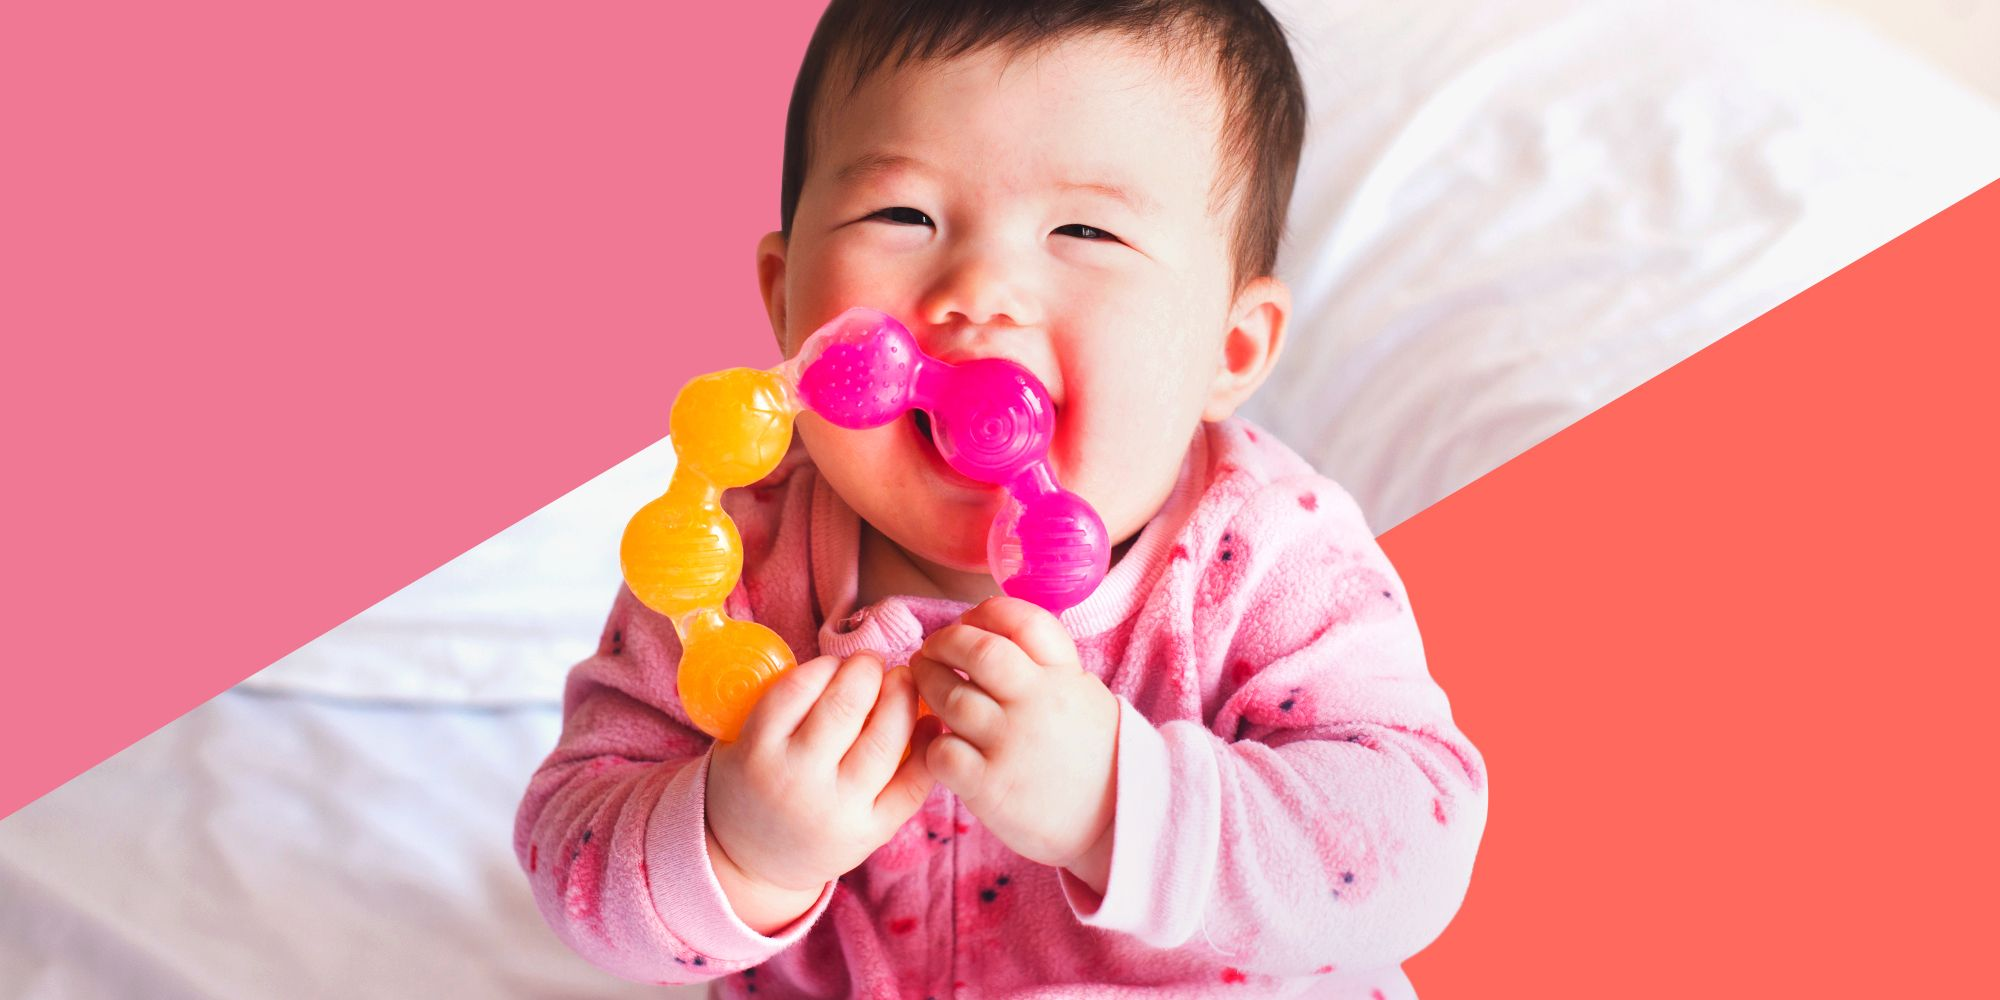 Baby Teethers Babies R Us 14 Best Teethers For Your Baby In 2020 Best Teething Toys